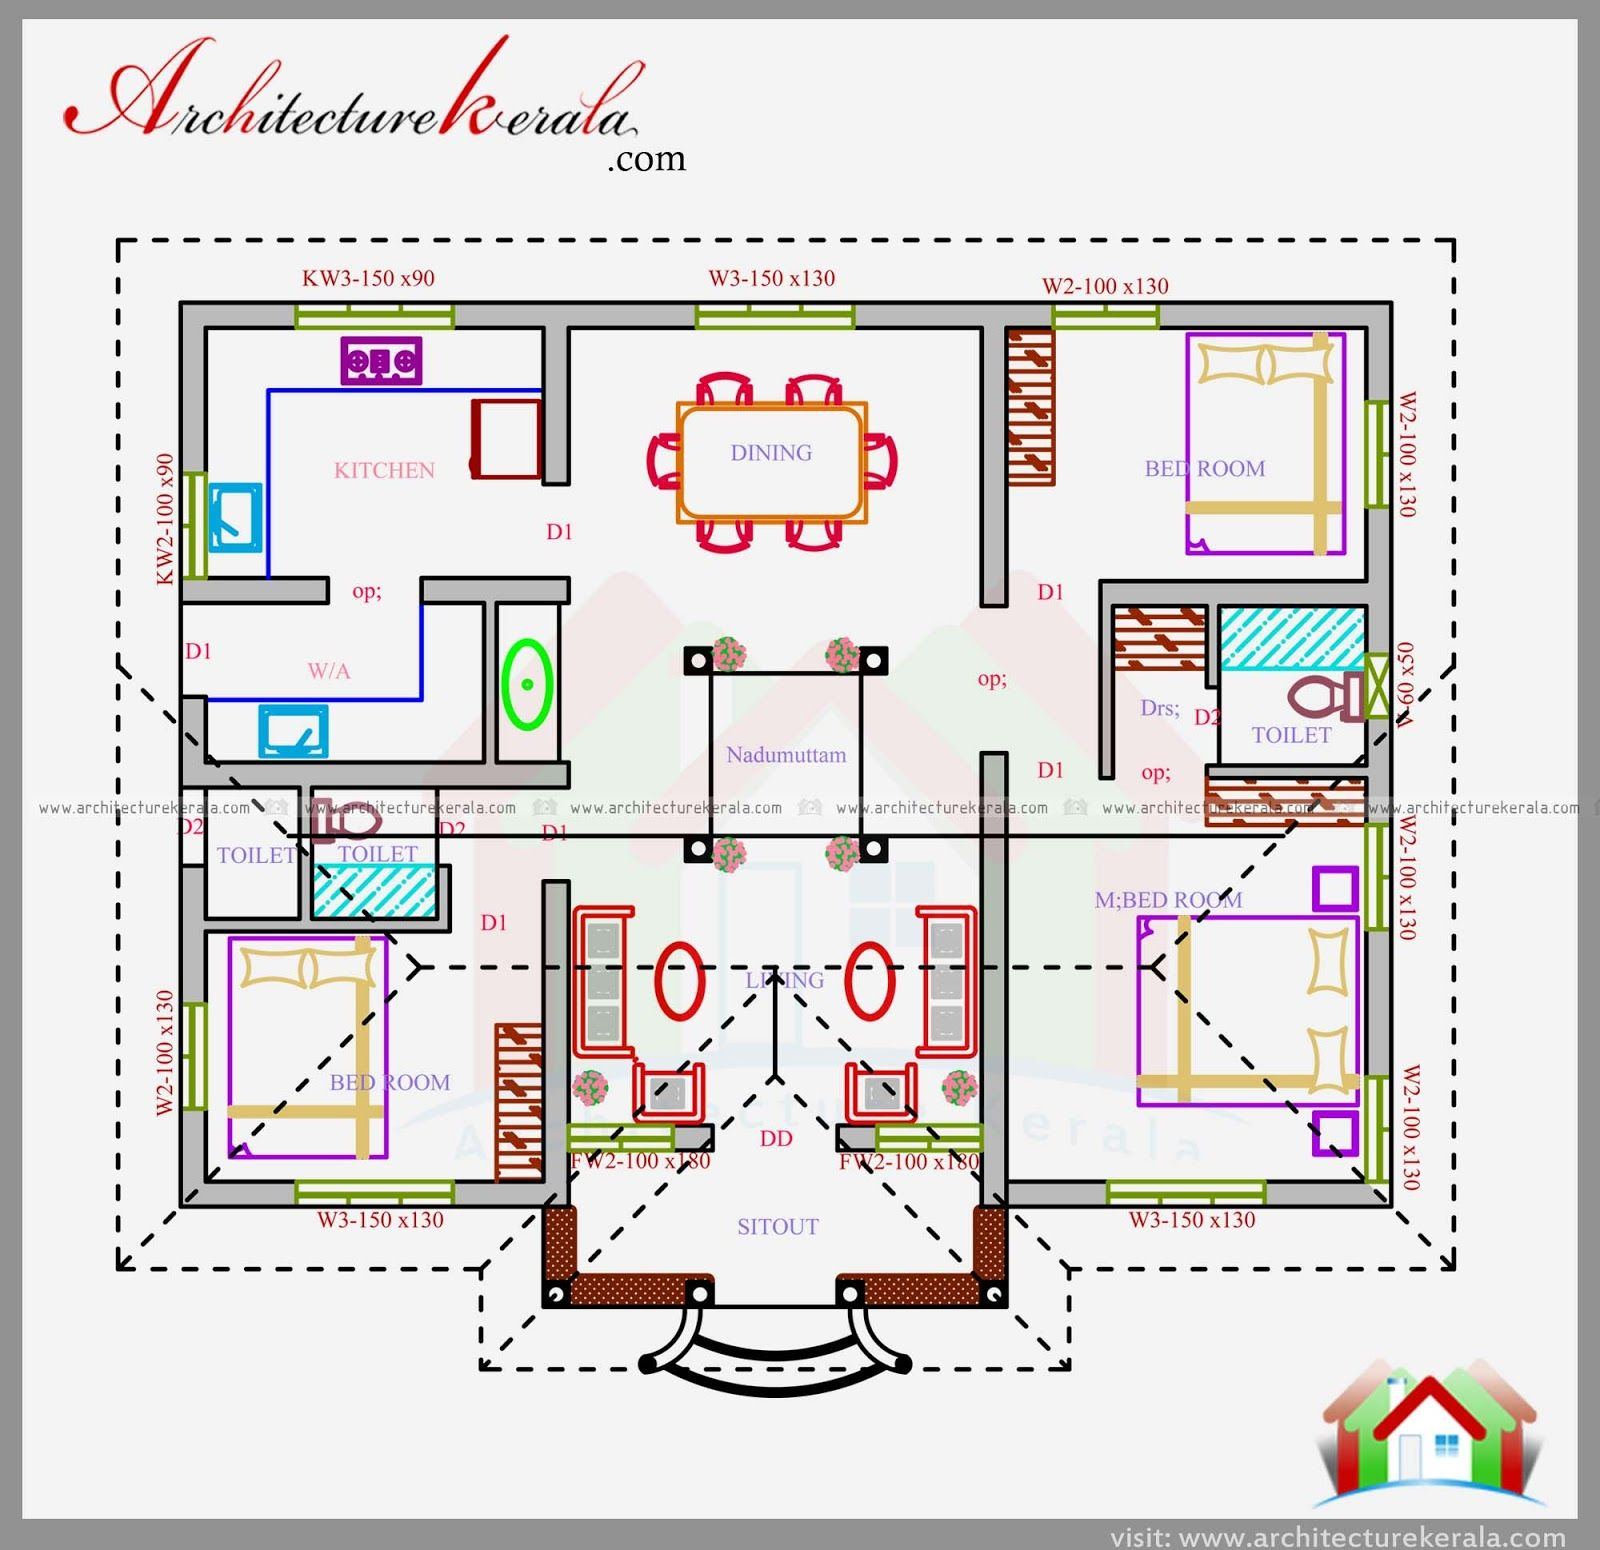 Three Bedrooms In 1200 Square Feet Kerala House Plan: 3 bedroom kerala house plans